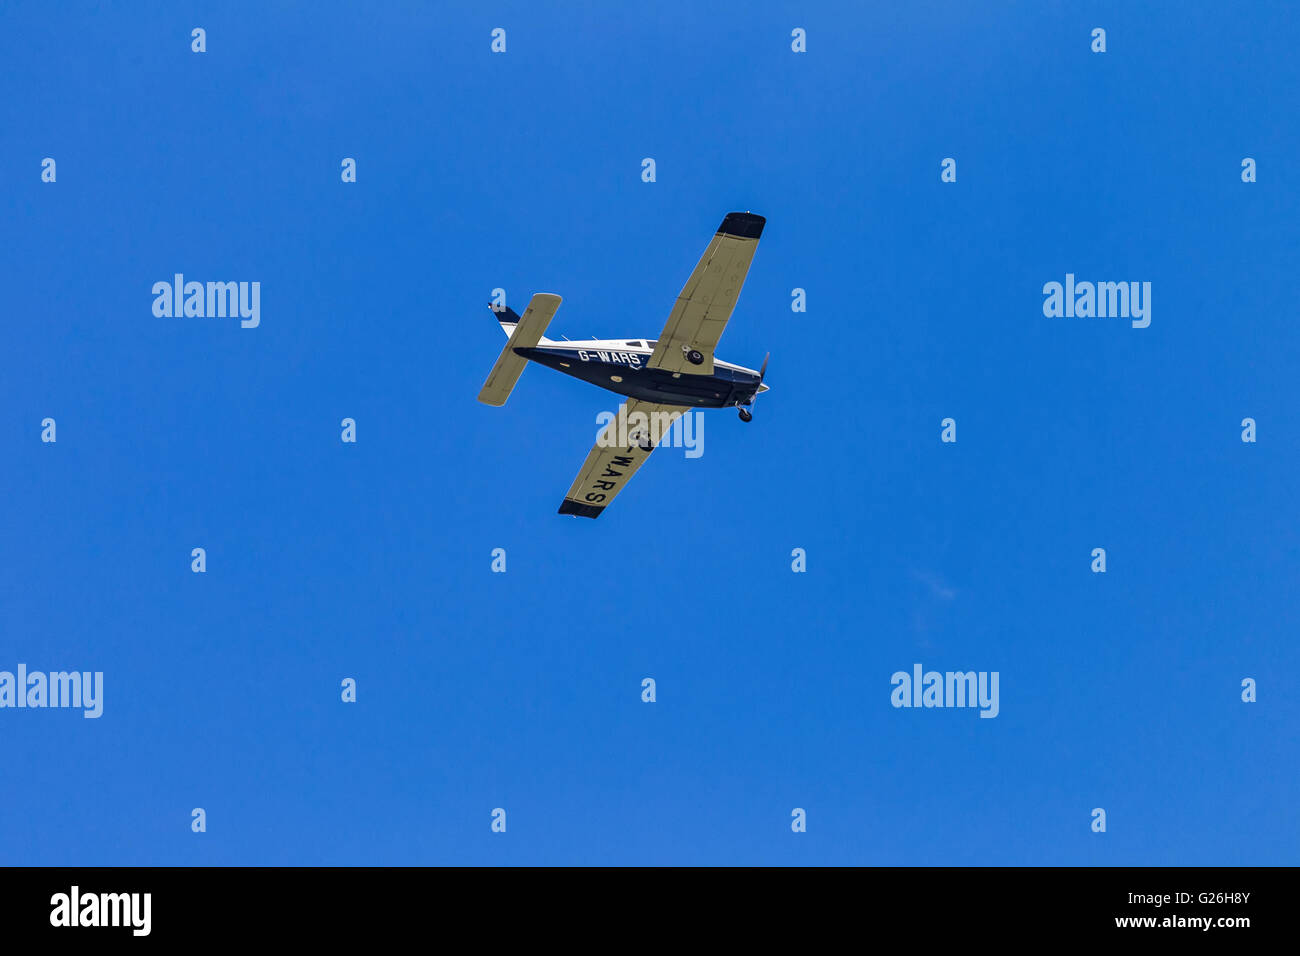 Piper PA-28 G-WARS flying, in a cloudless blue sky, over Elstree Airfield, Hertfordshire, UK, prior to landing. - Stock Image